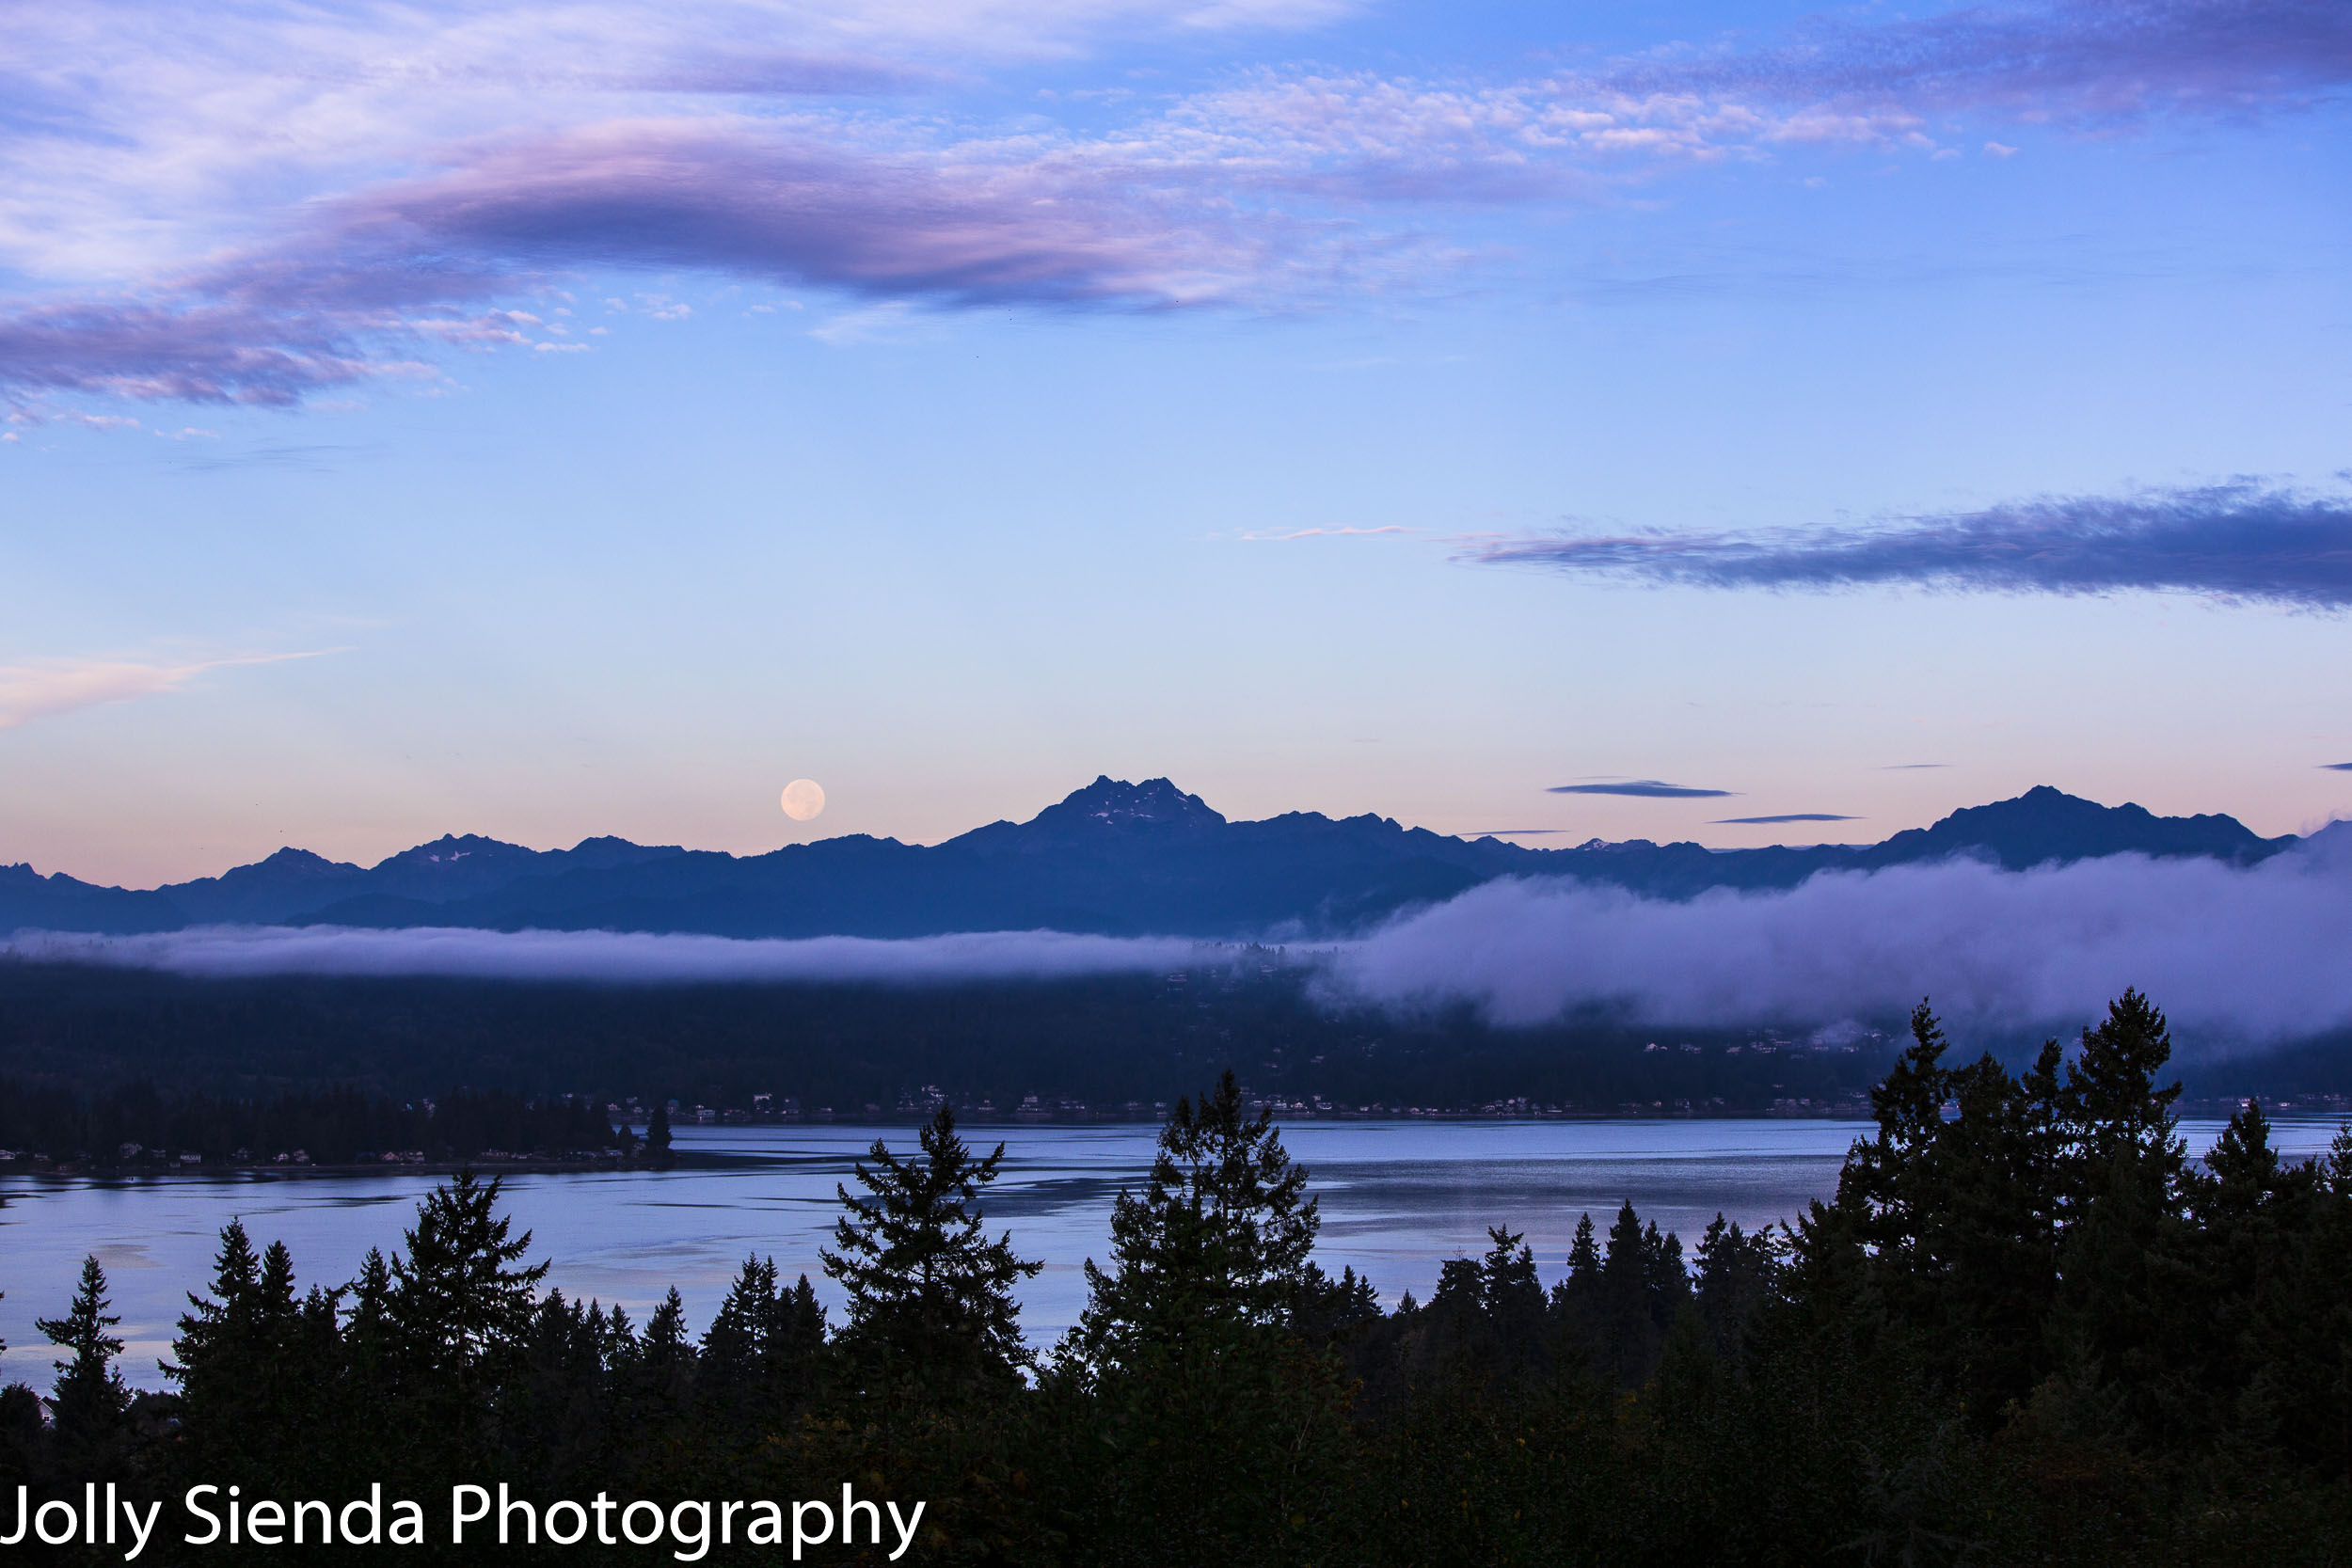 Autumn full moon over Olympic Mountains with fog rising over the